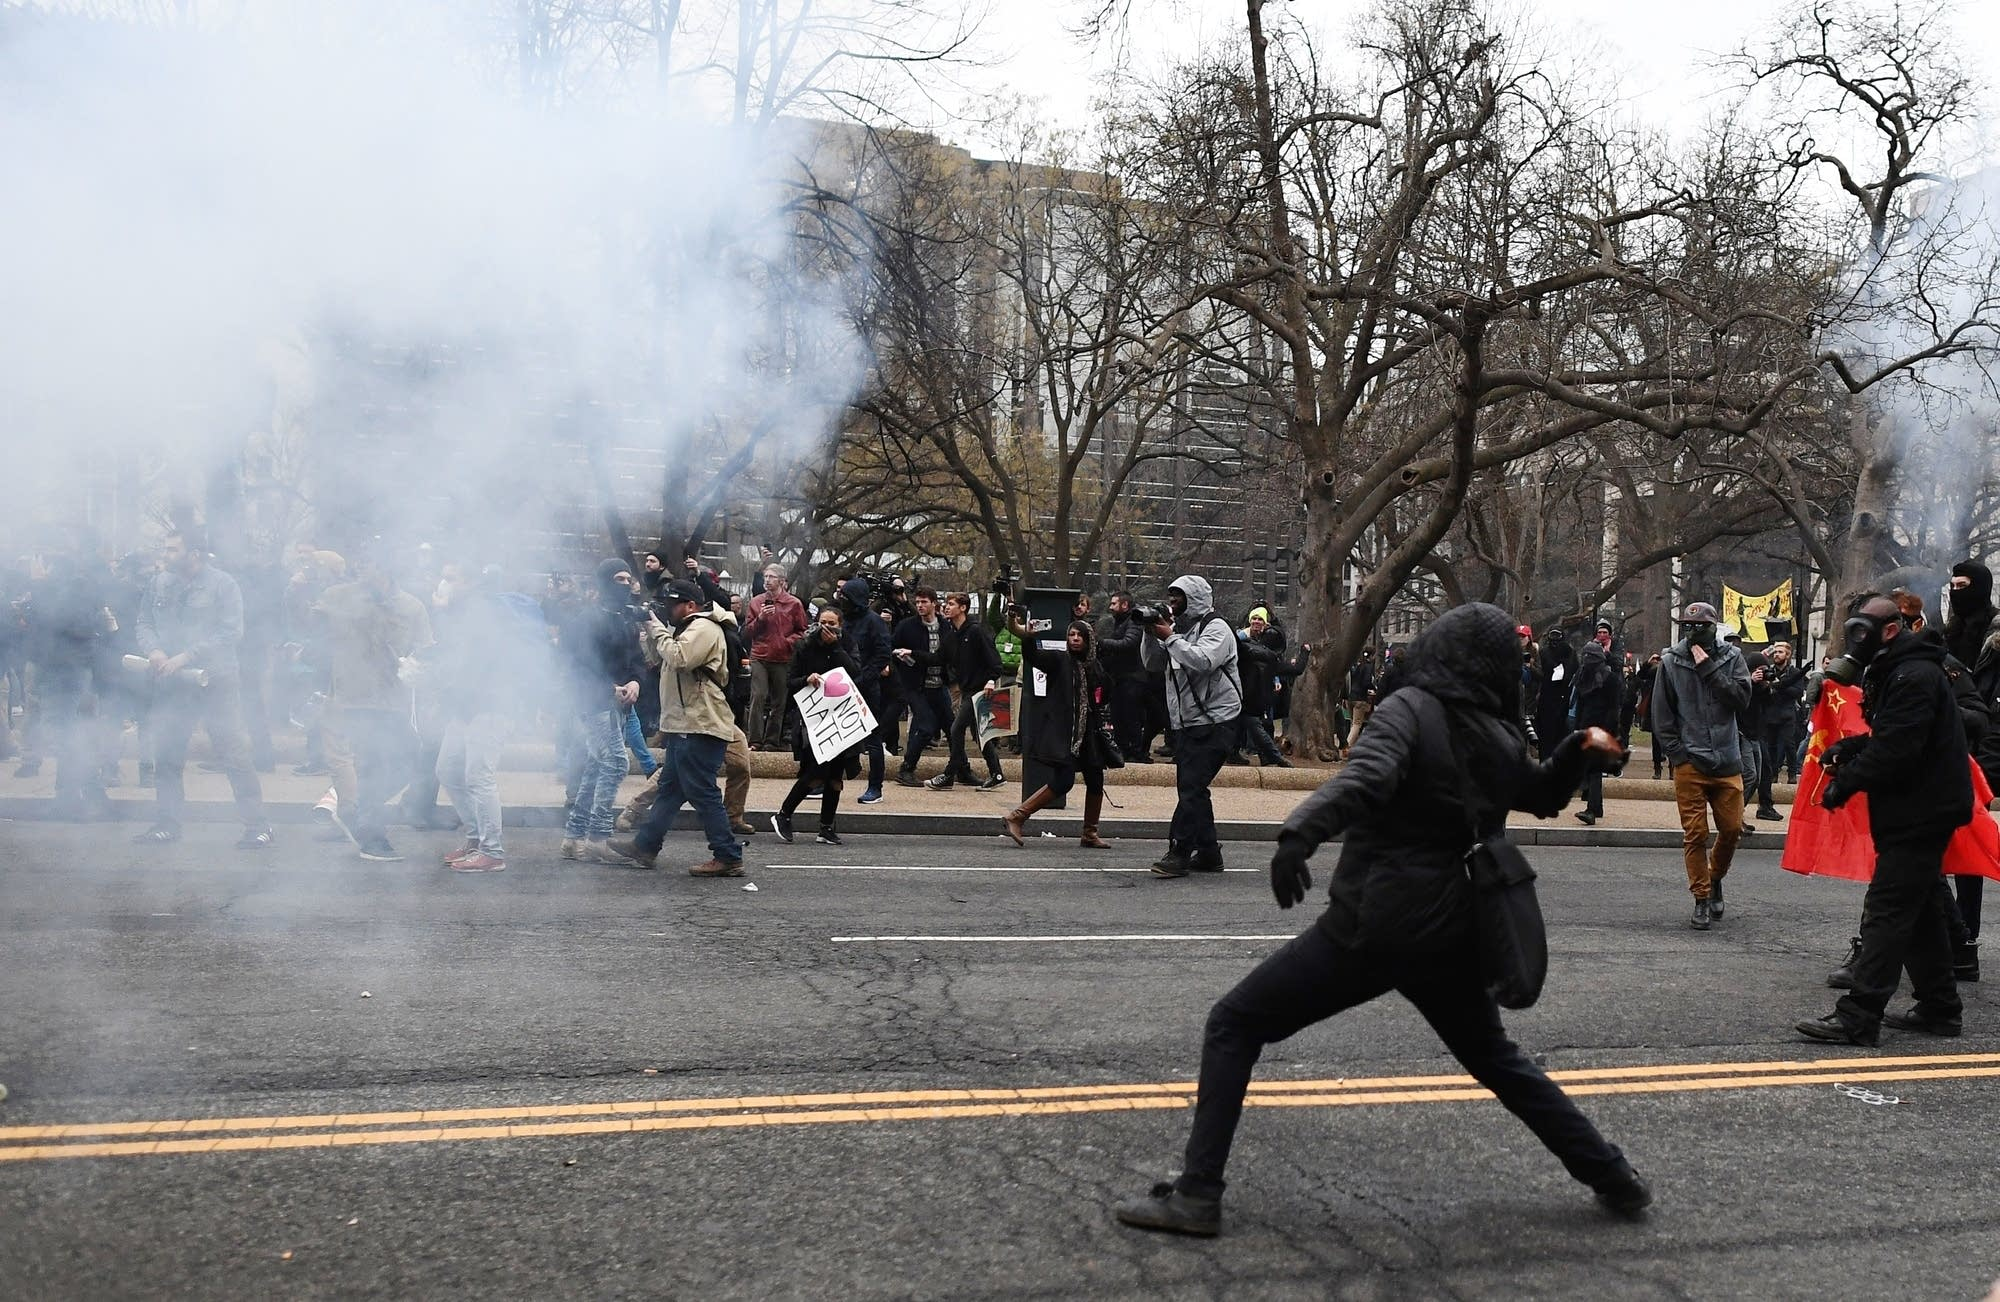 An anti-Trump protester throws a brick at police during clashes.